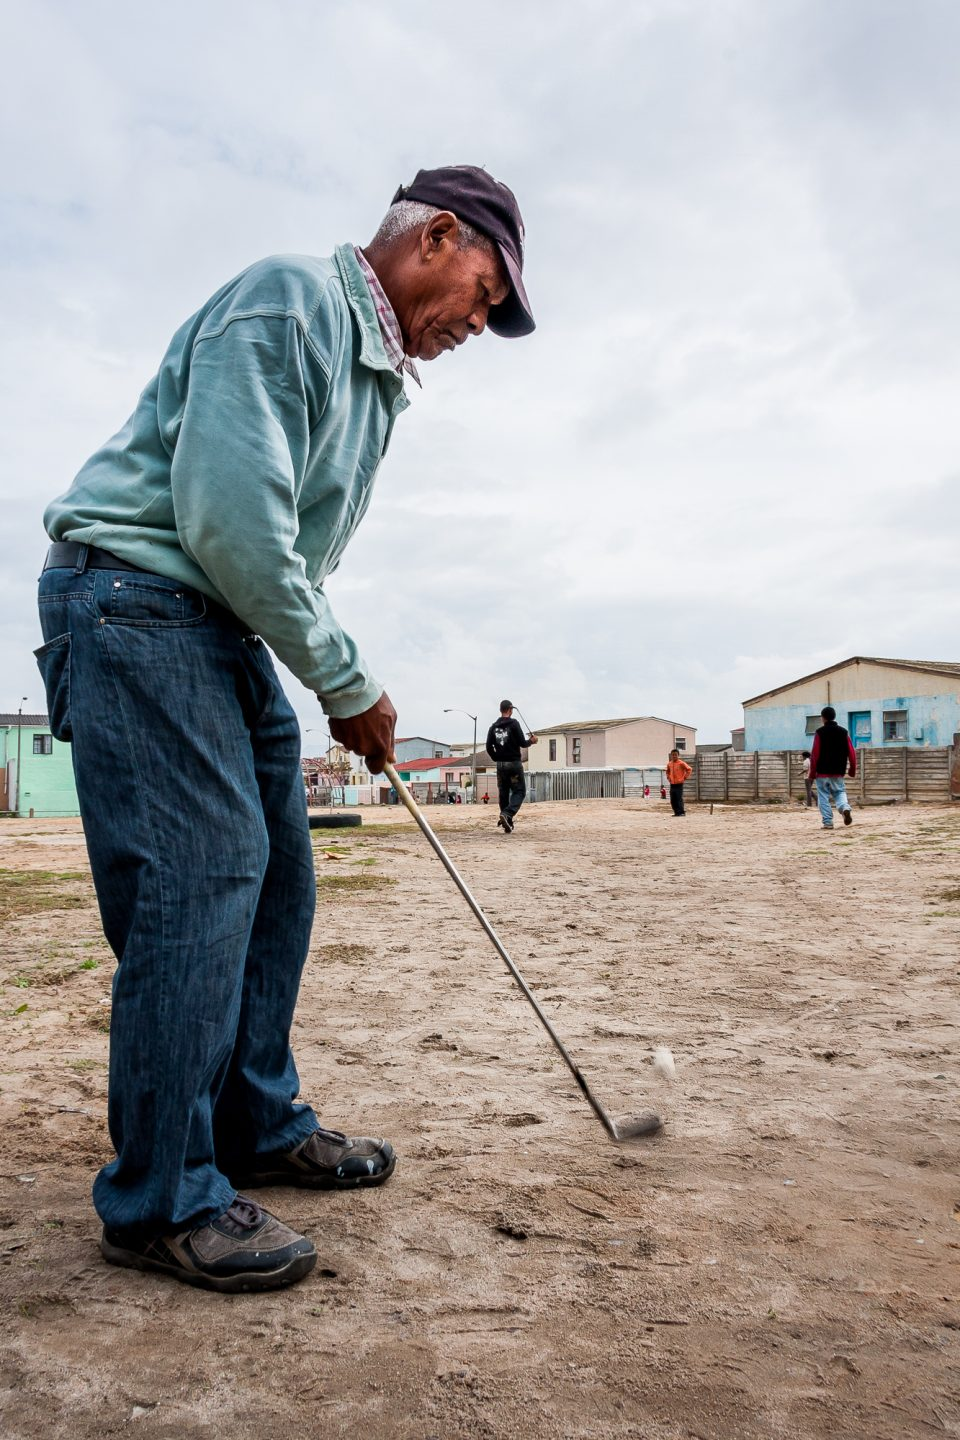 A man teaches a group of children how to play golf on the nearby community field.